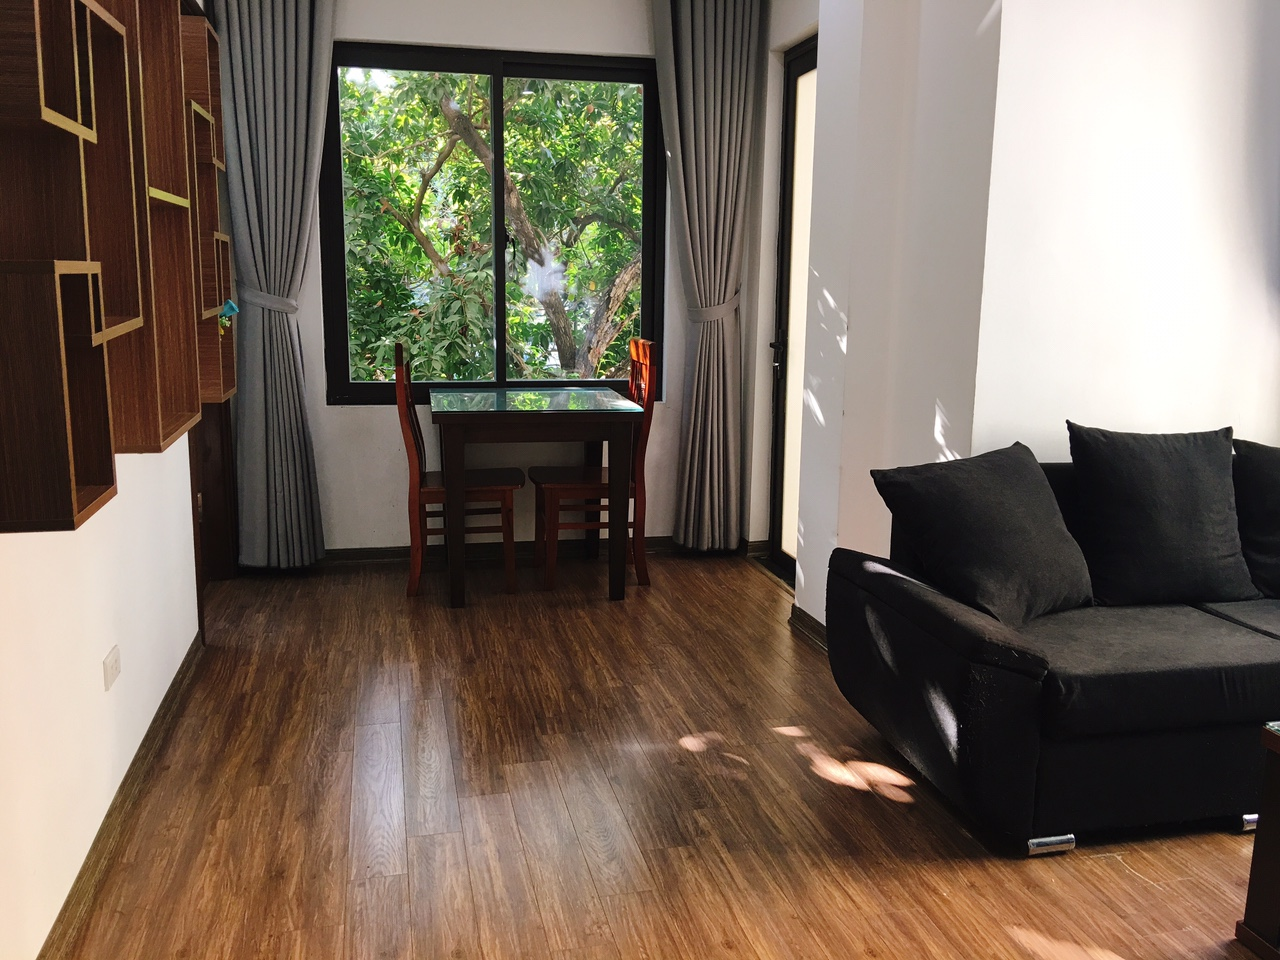 1 bedroom apartment for rent suitable for living in Tay Ho